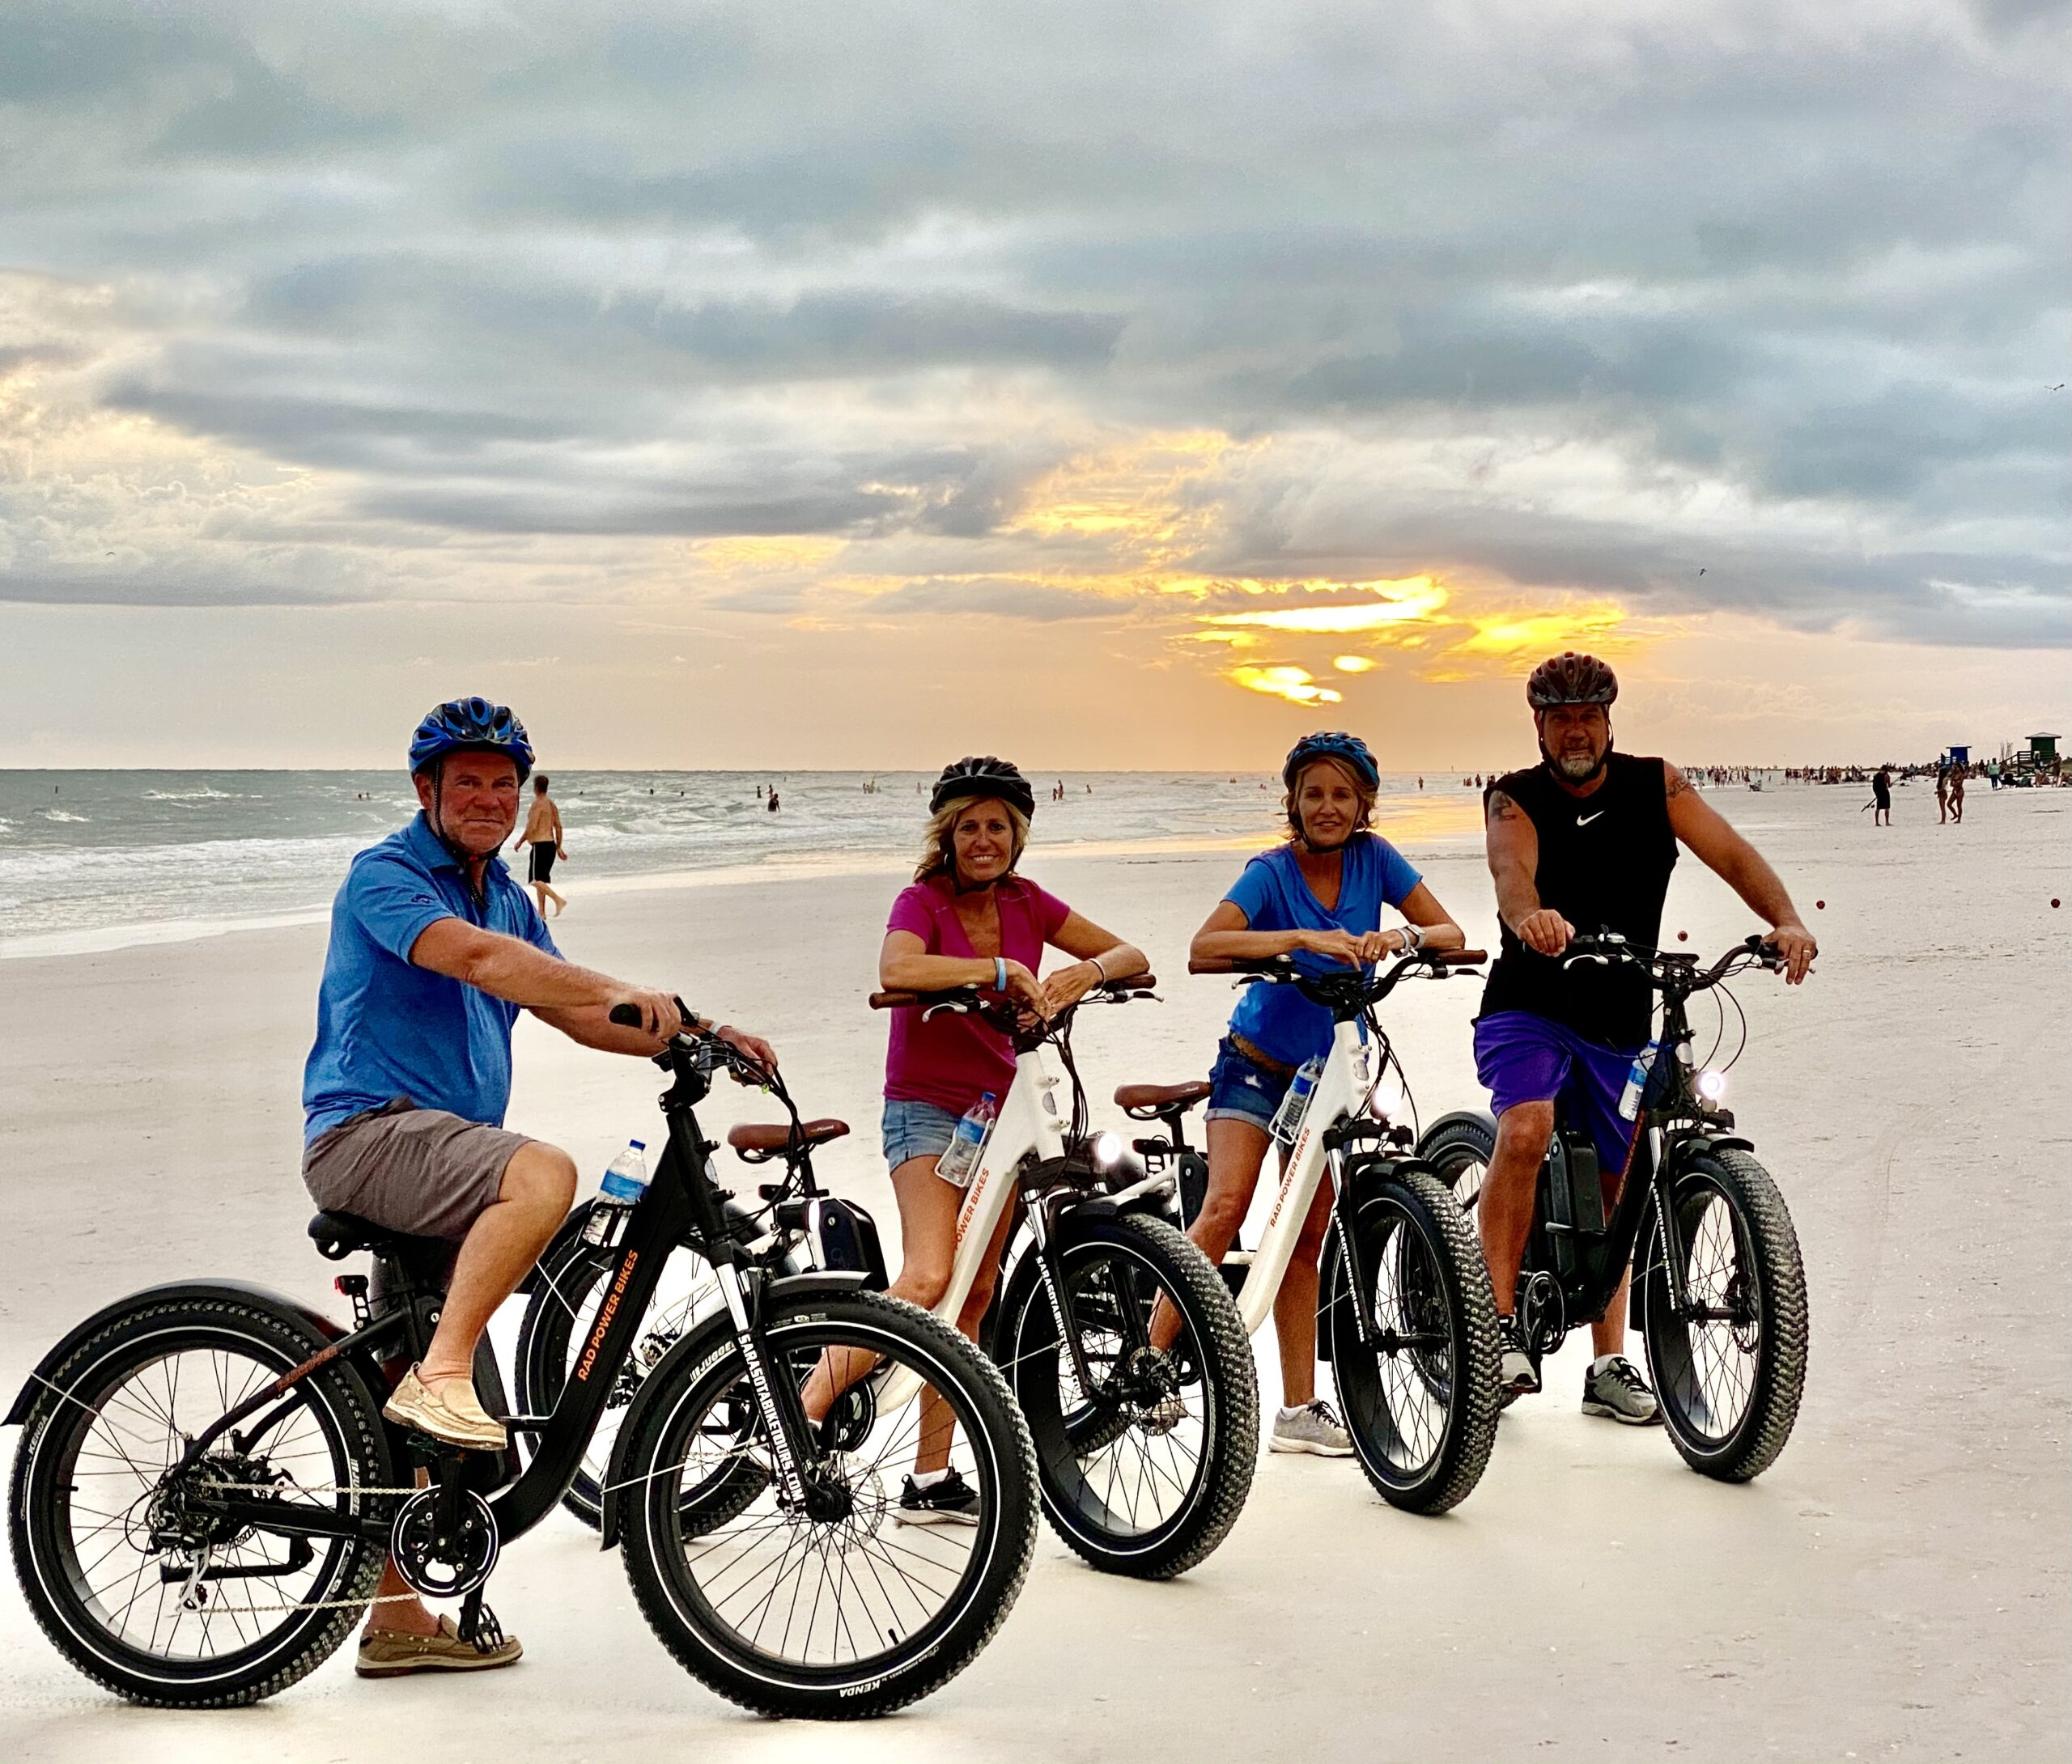 Ebike Siesta Key sunset tour